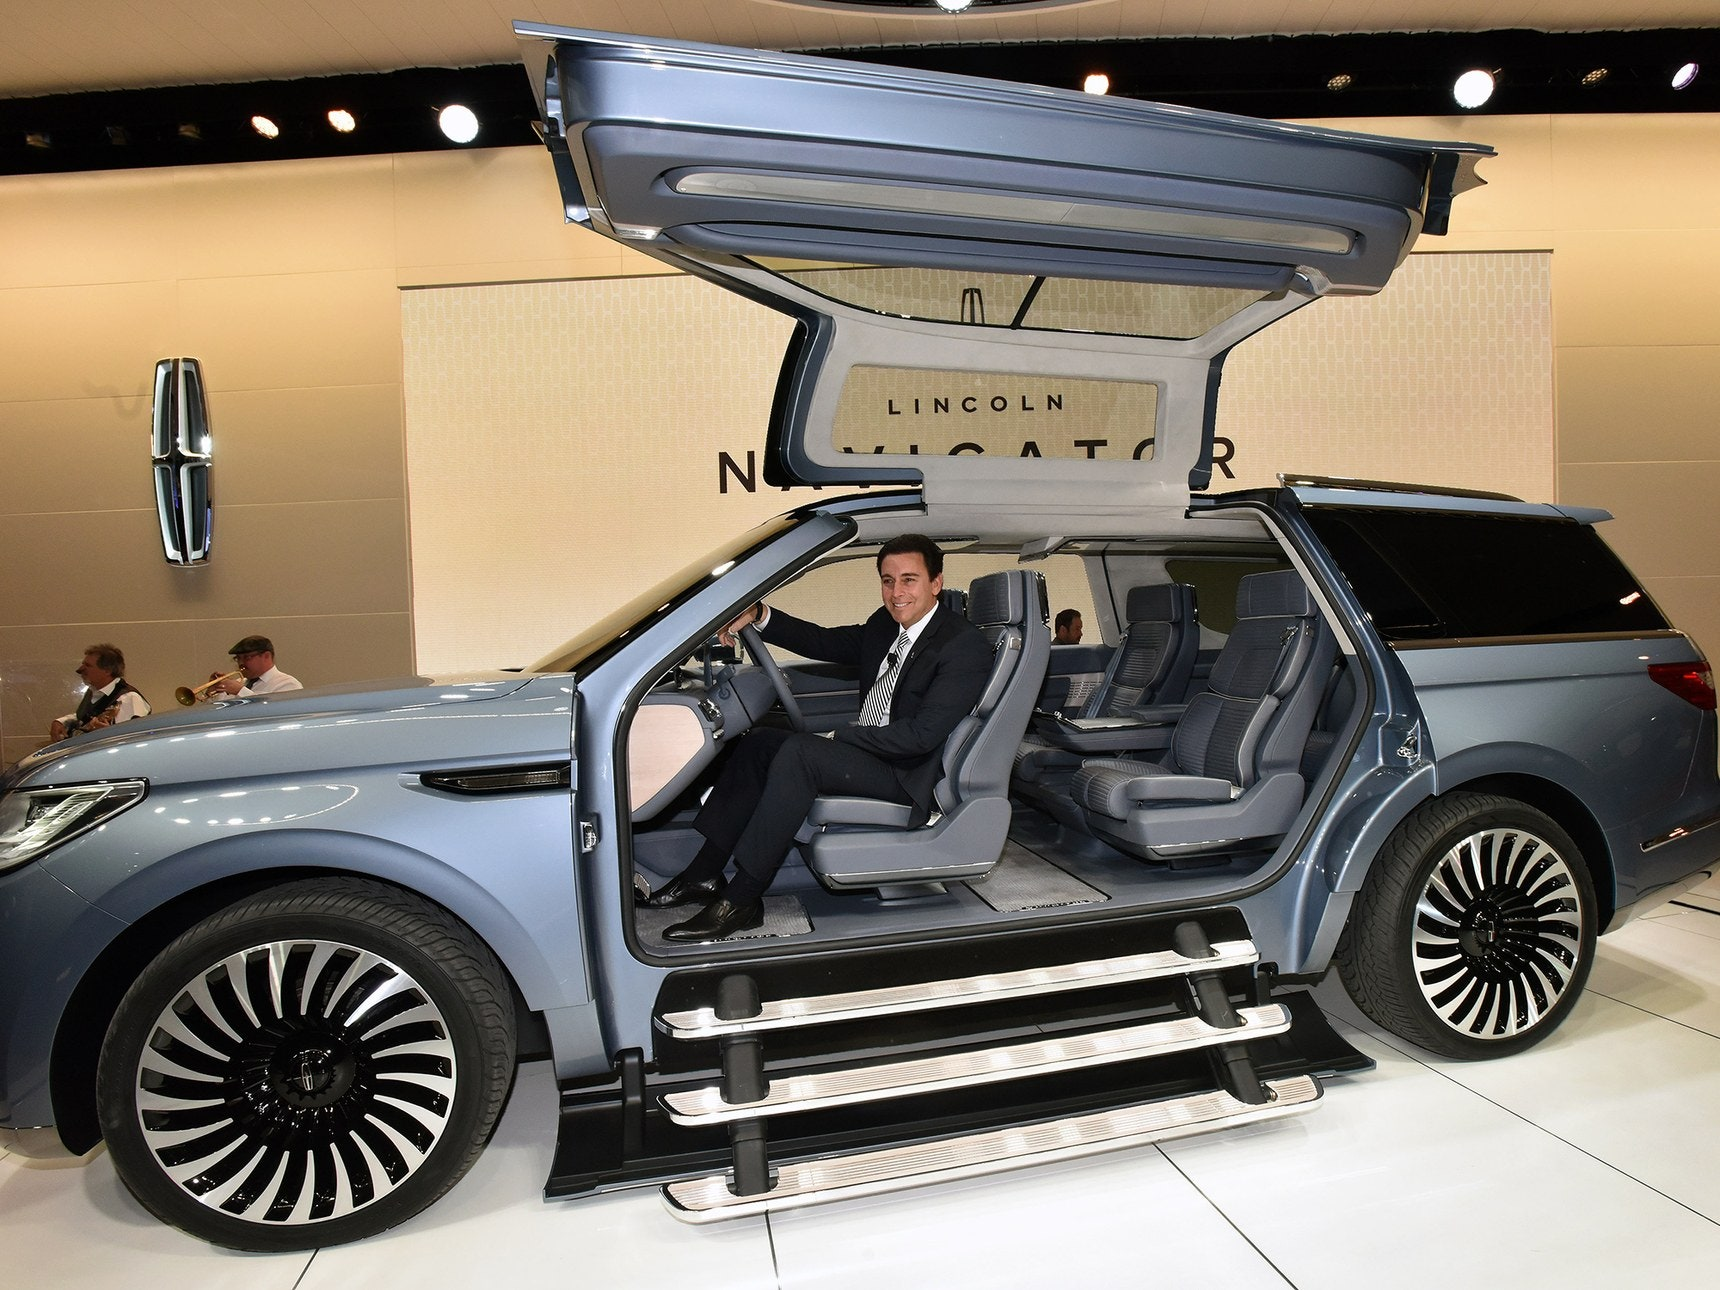 Lincoln s Yacht Sized Concept SUV Has a Closet and Staircase